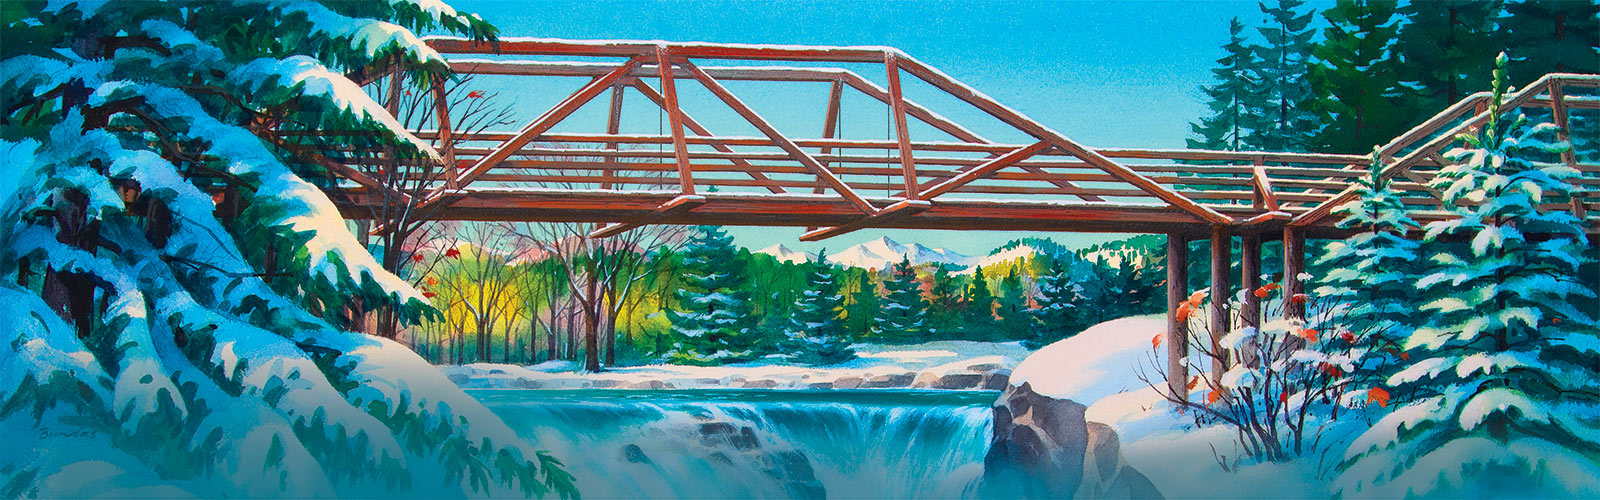 Painting of Tumwater Falls